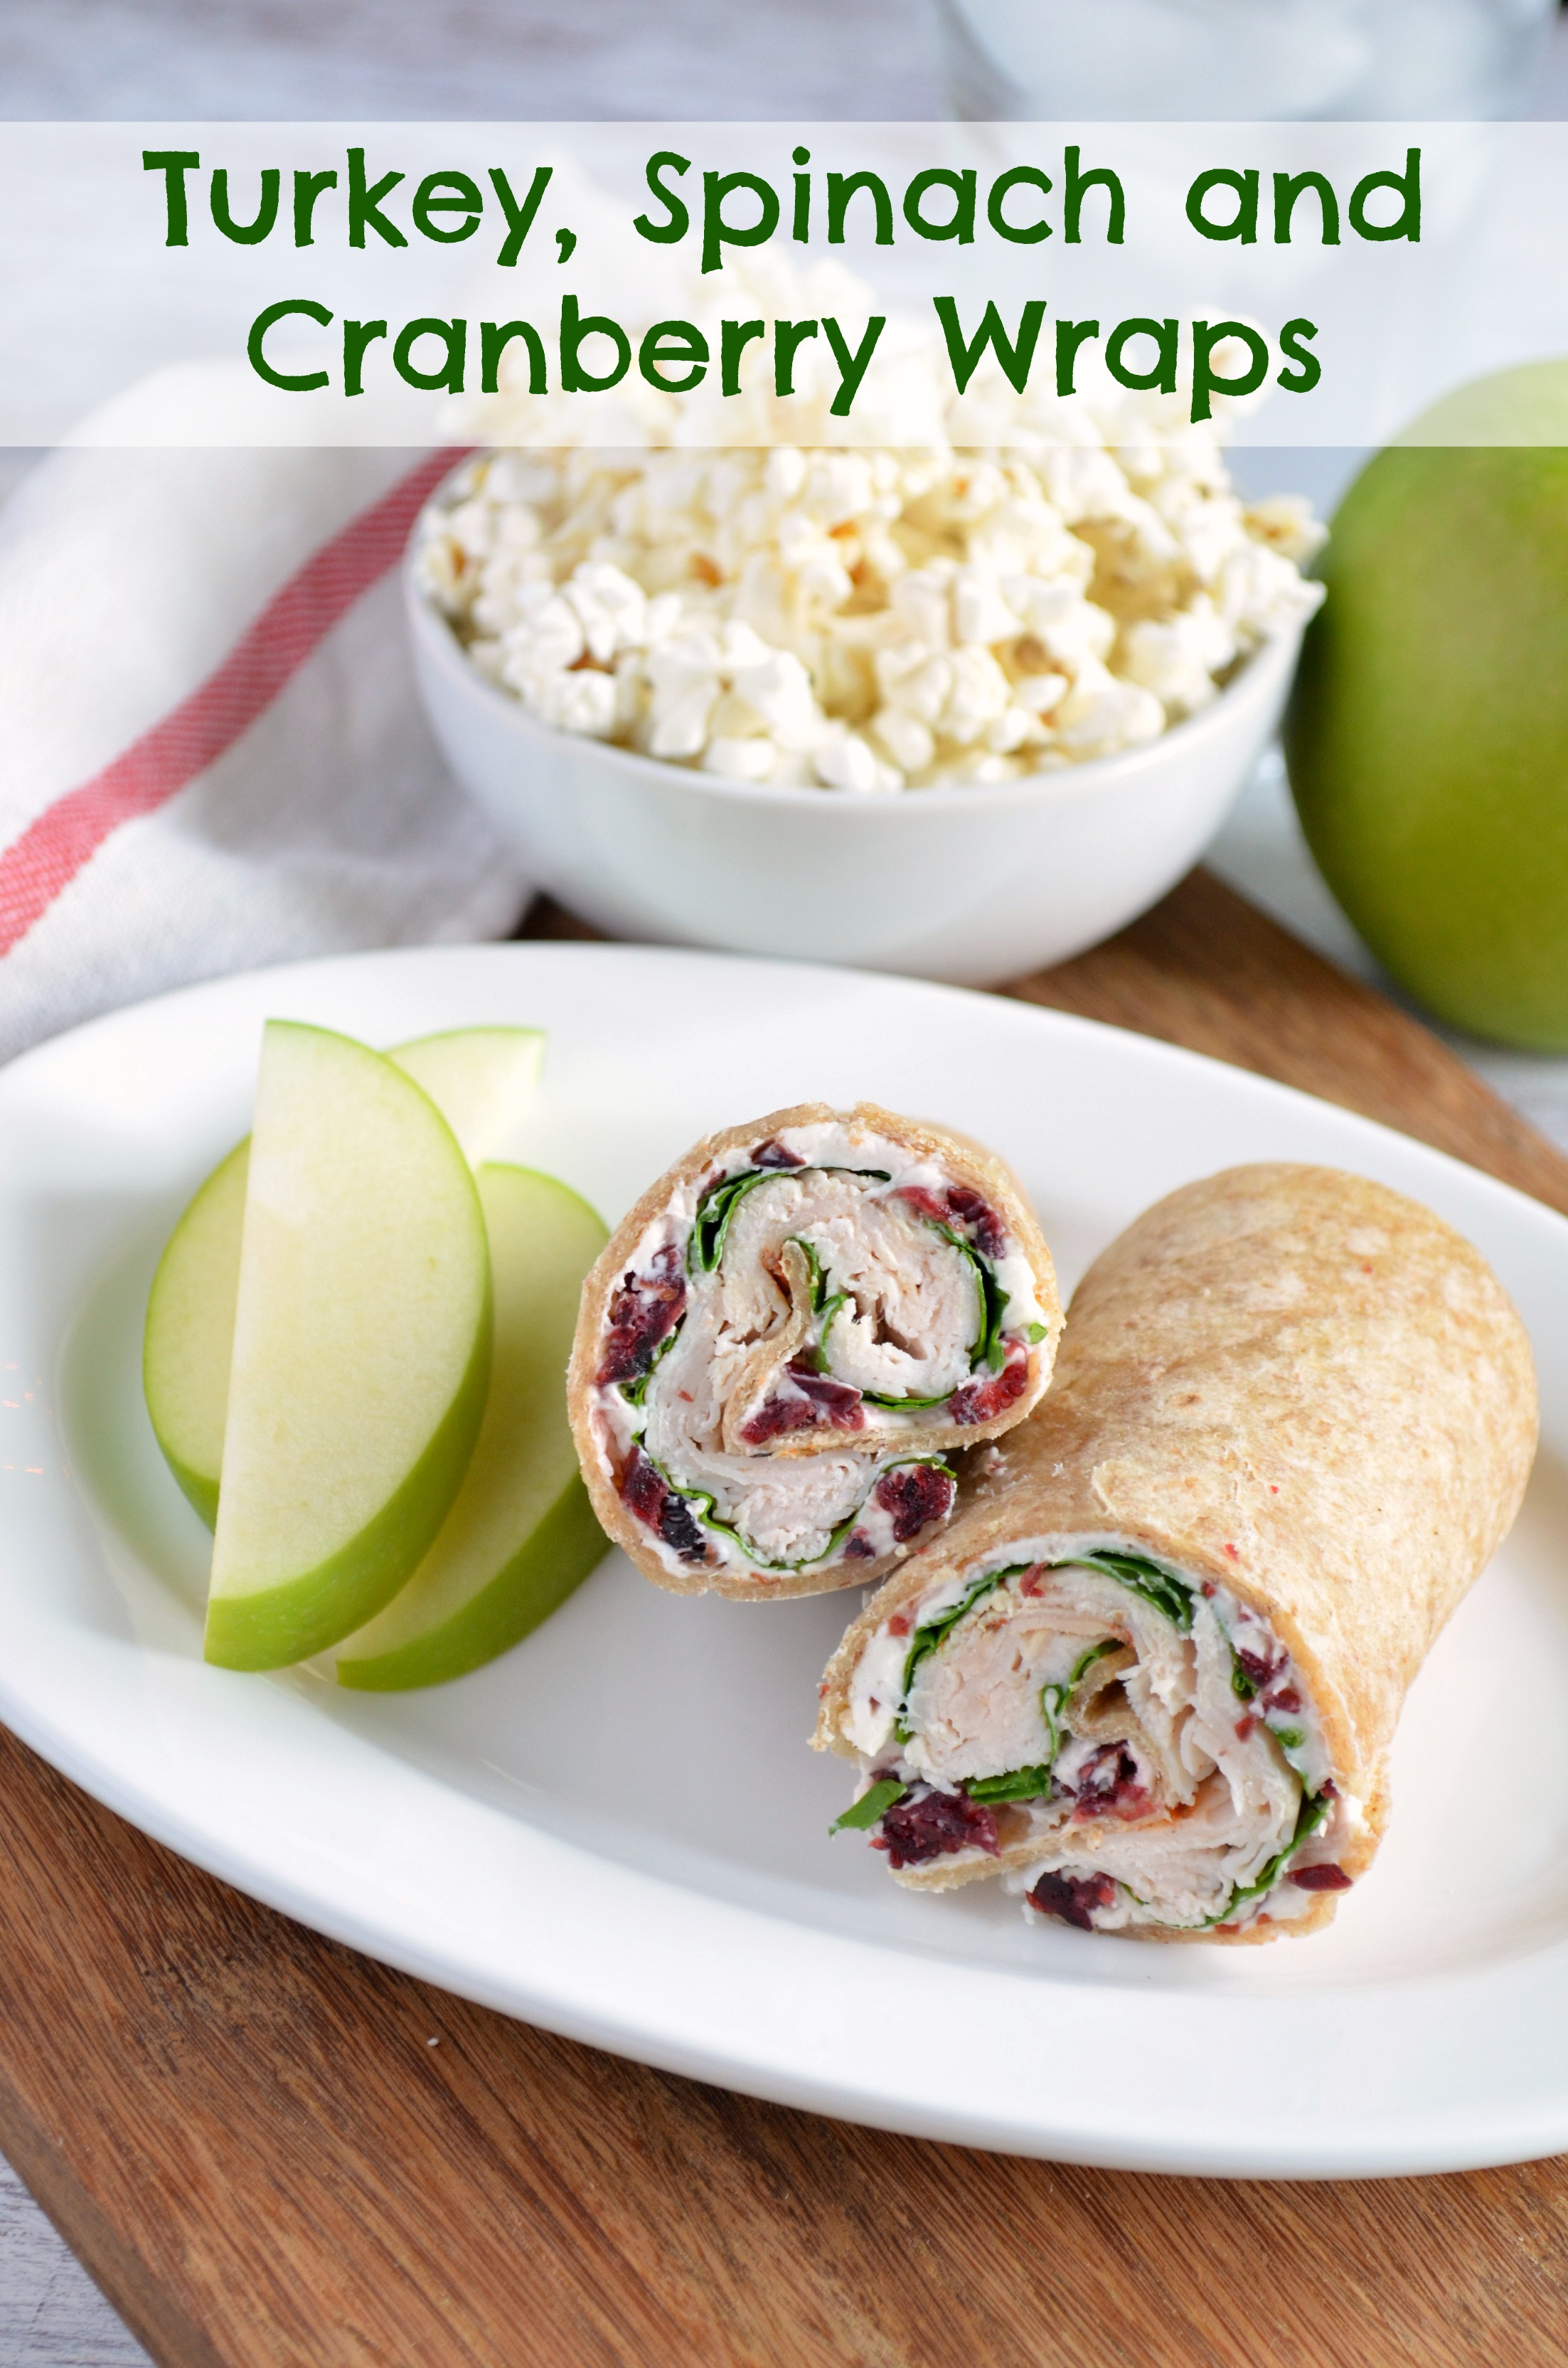 Turkey, Spinach, and Cranberry Wraps